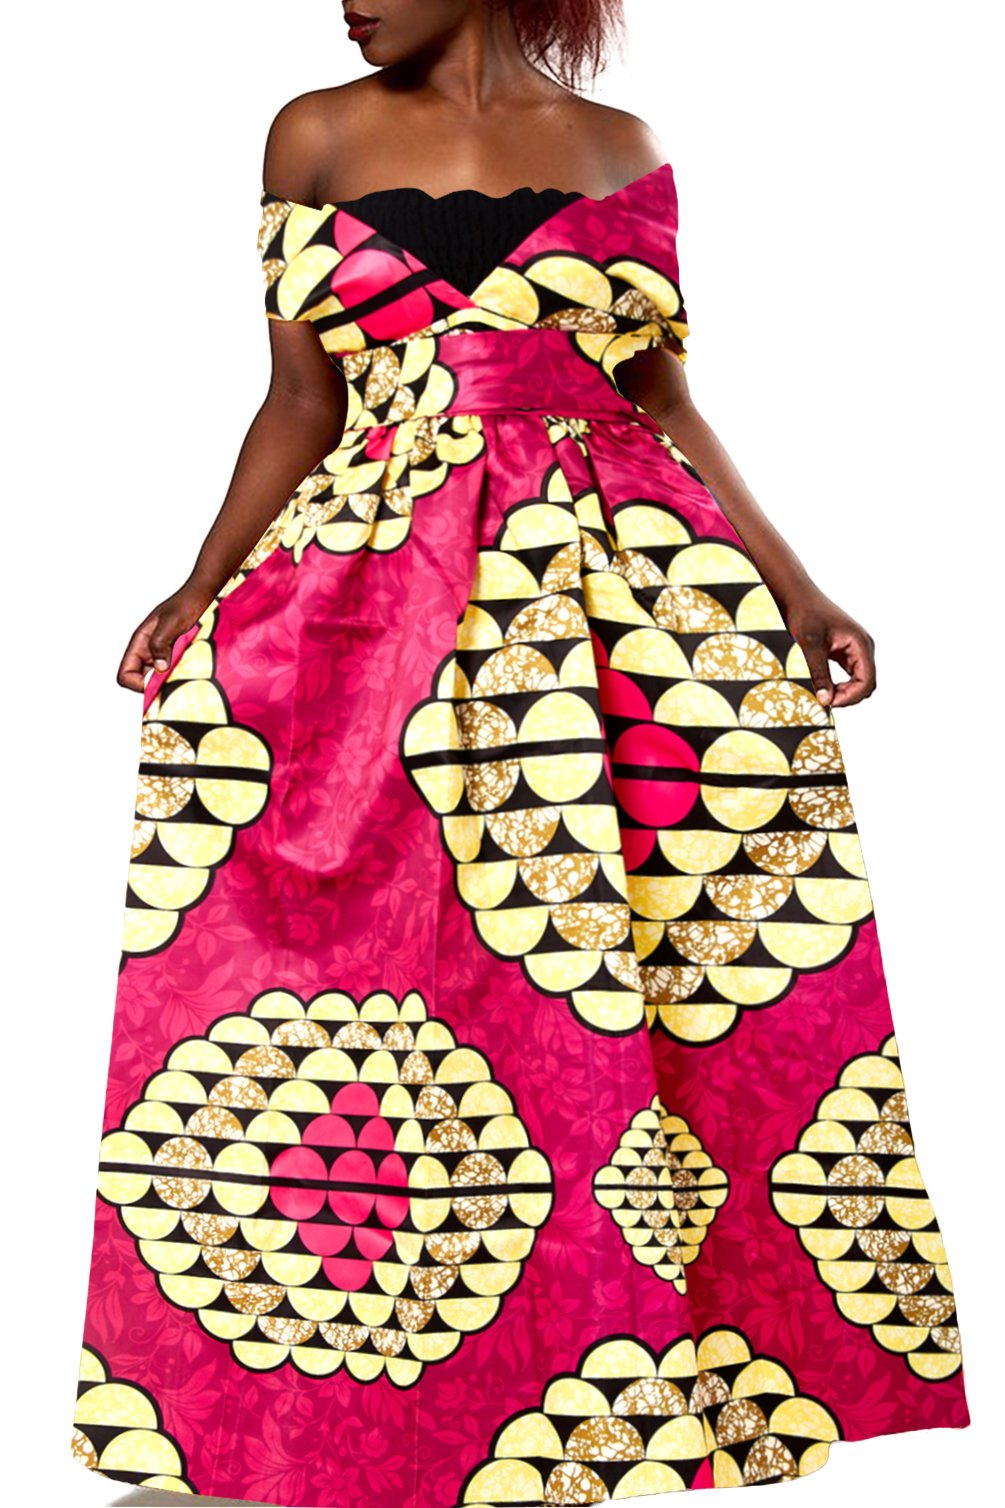 Uideazone Womens African Dress Formal Prom Dashiki Print Sleeveless Peplum Maxi Dress